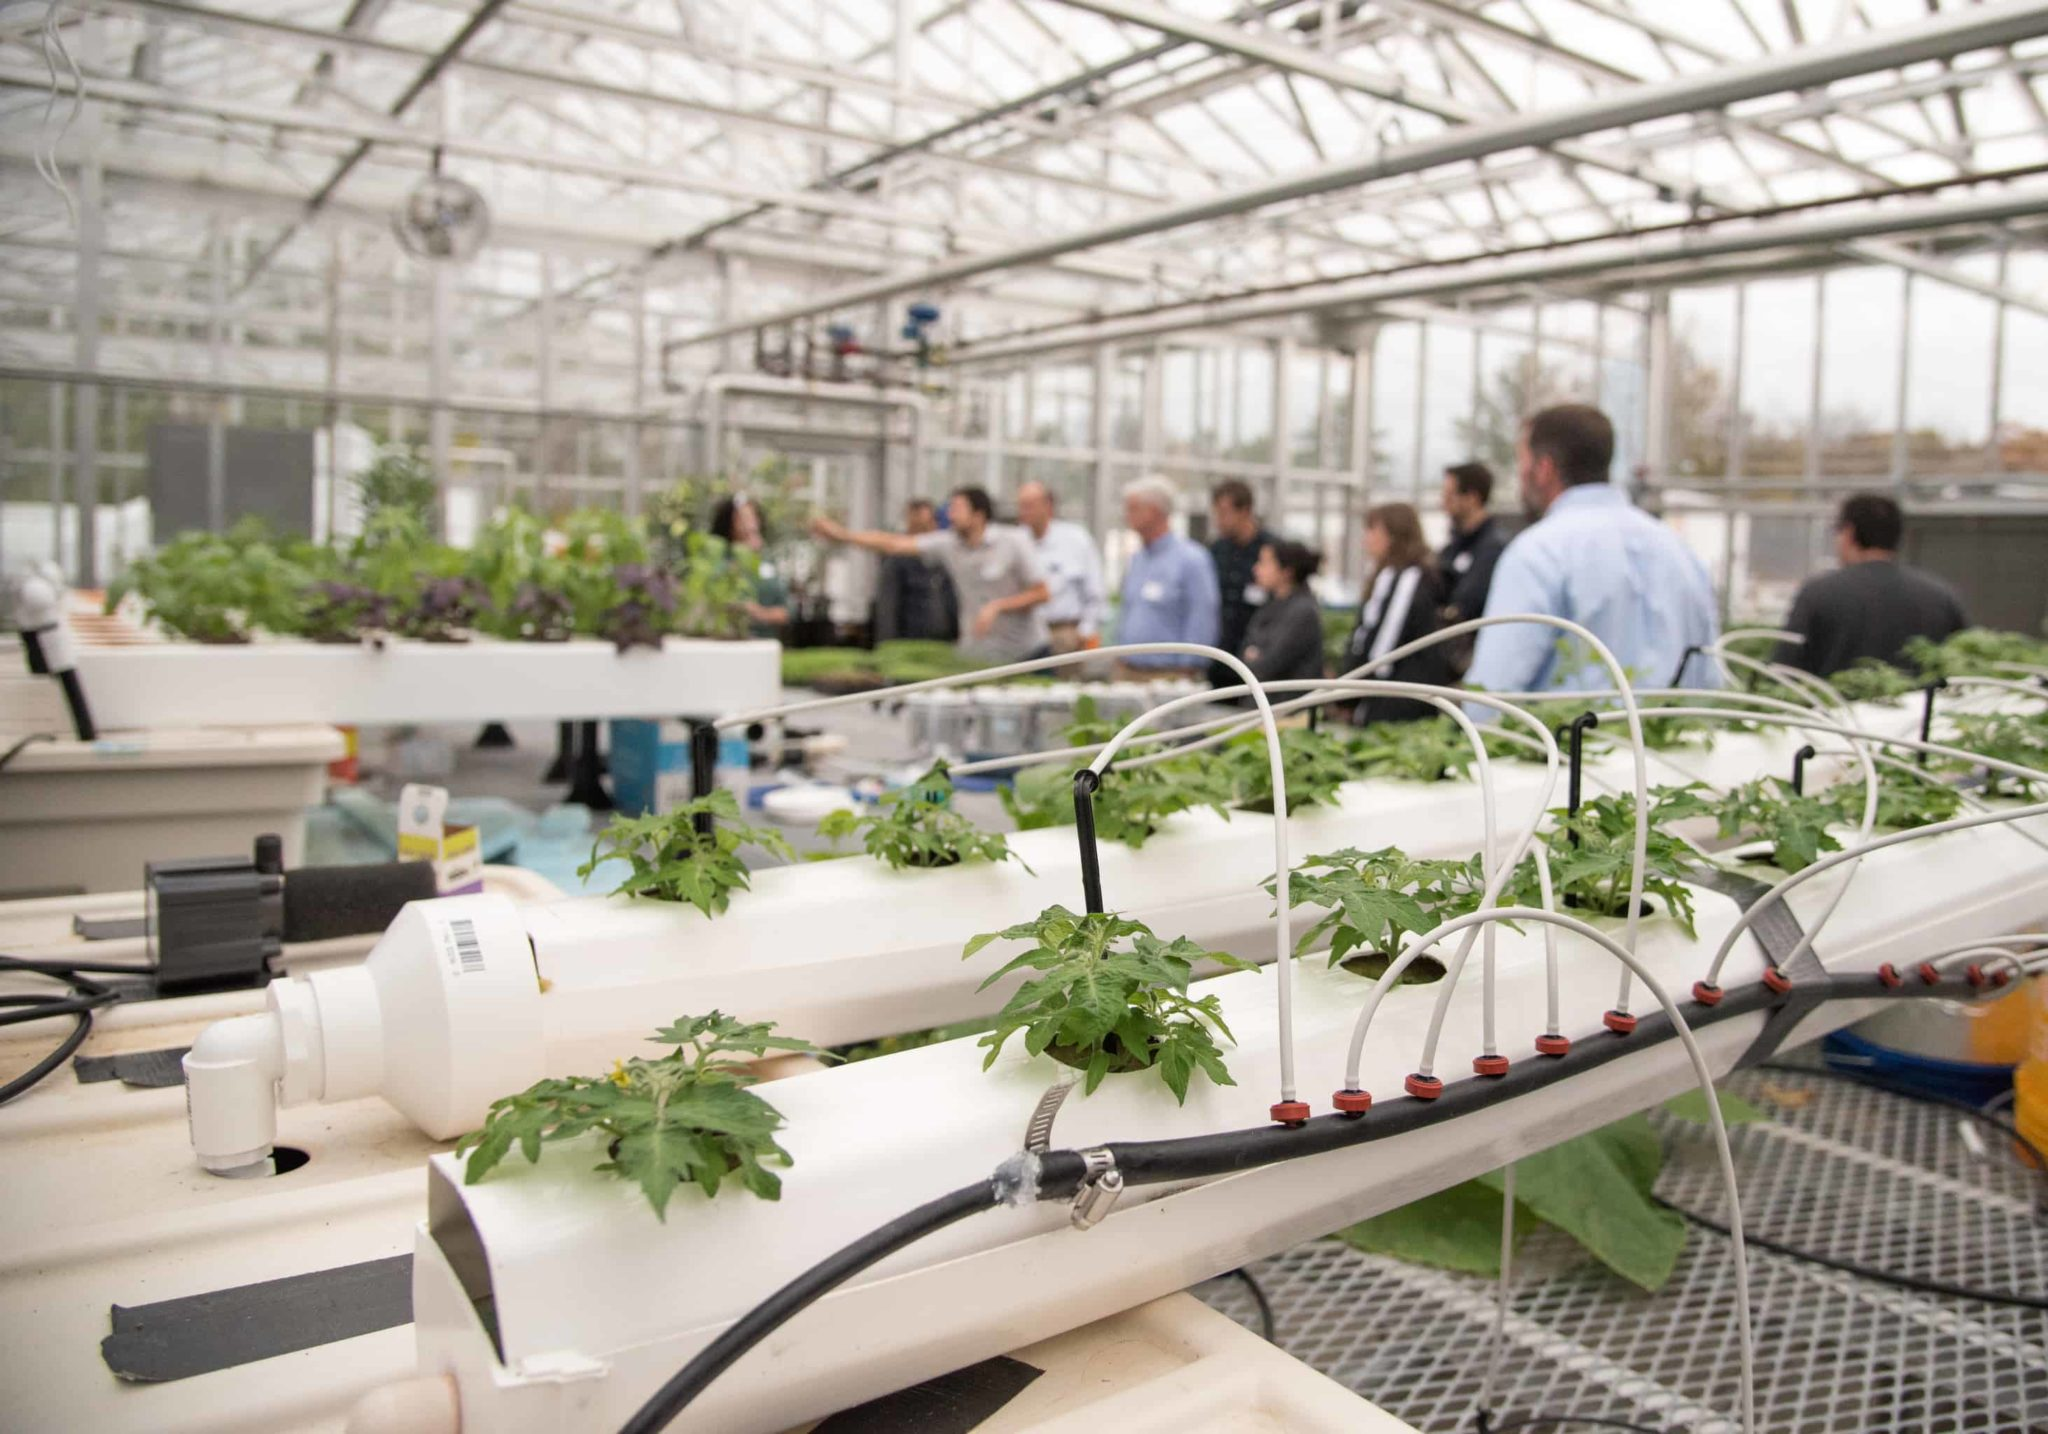 hydroponics system in a greenhouse